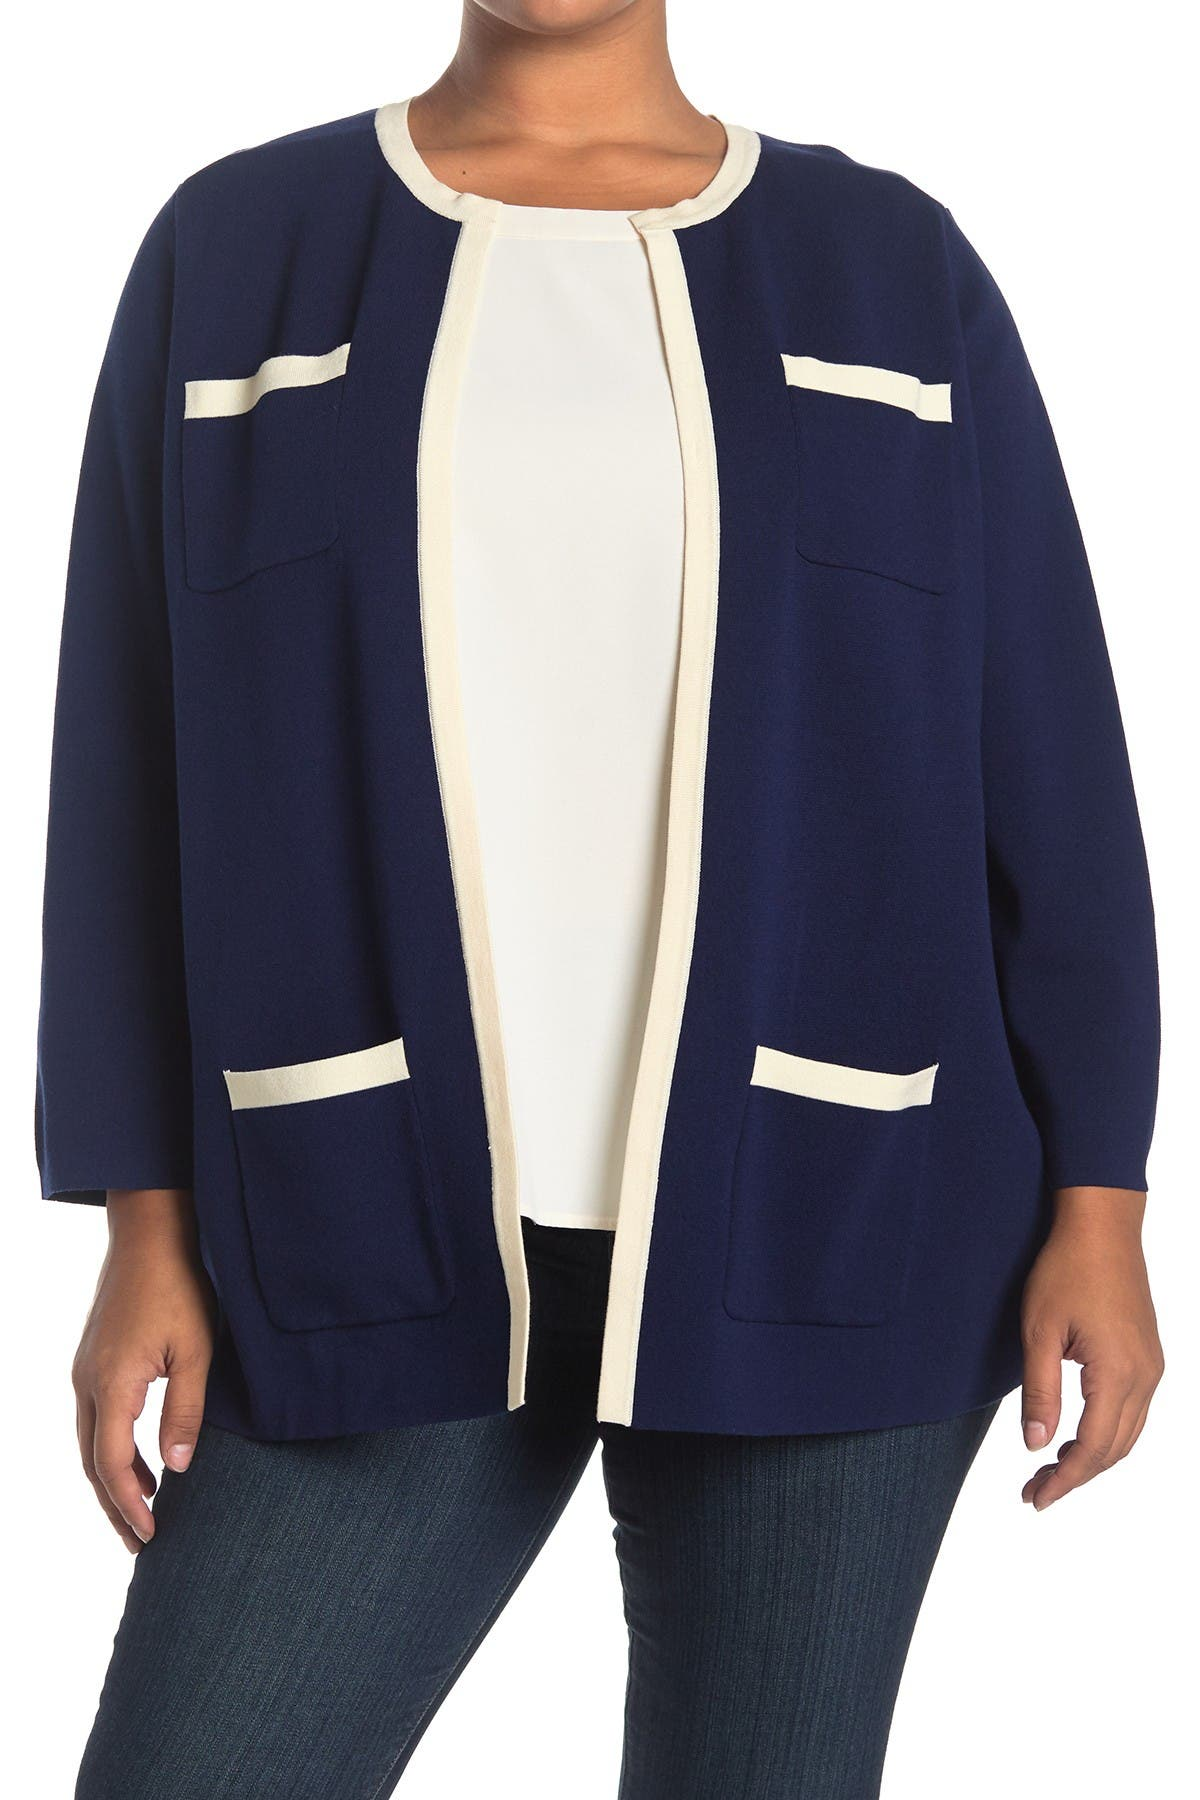 Image of Anne Klein Paris Cardigan